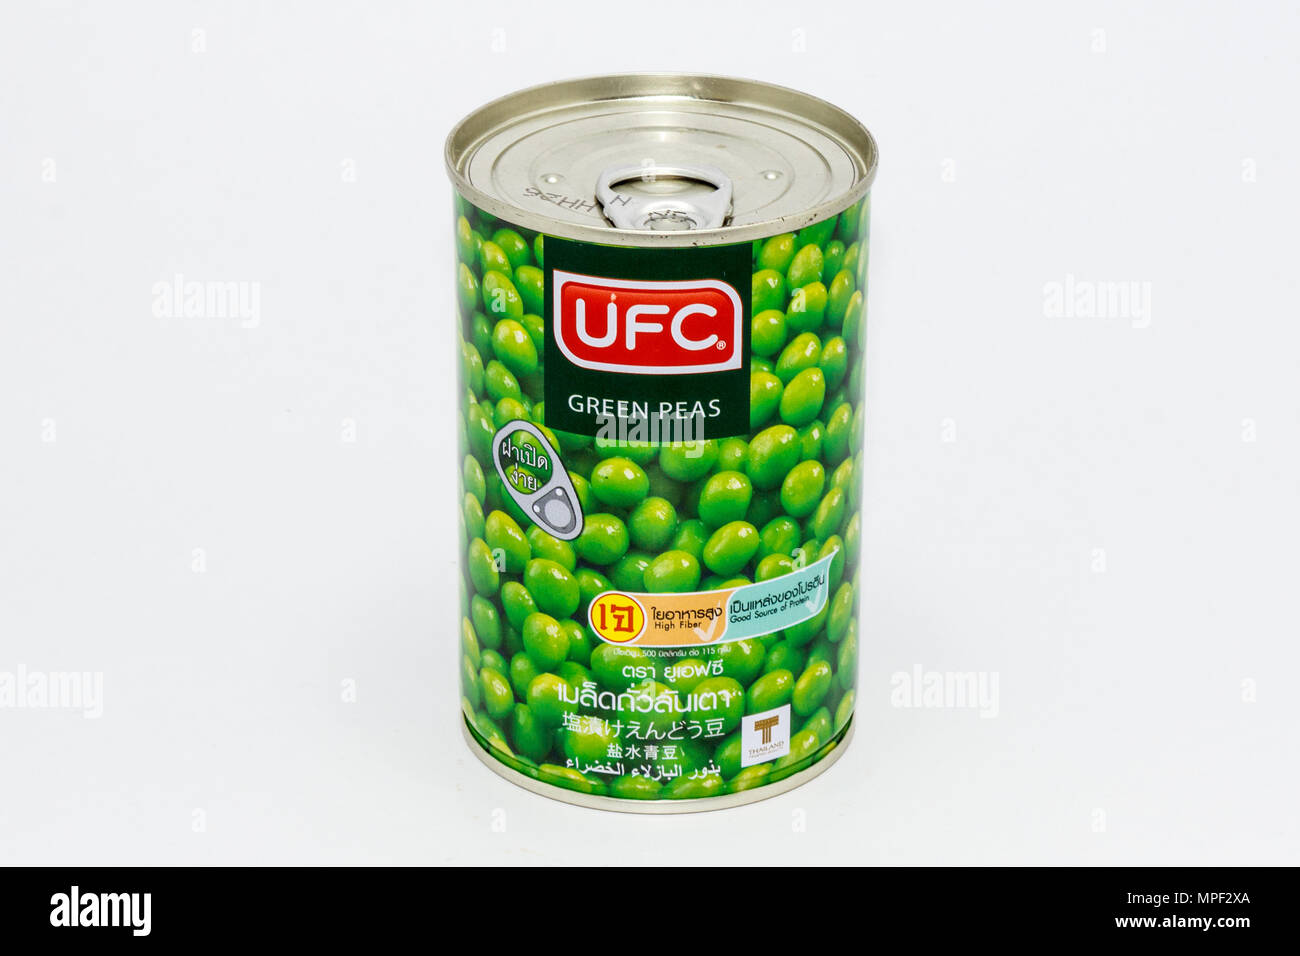 Phuket, Thailand-17th April 2018: Can of UFC green peas - Stock Image